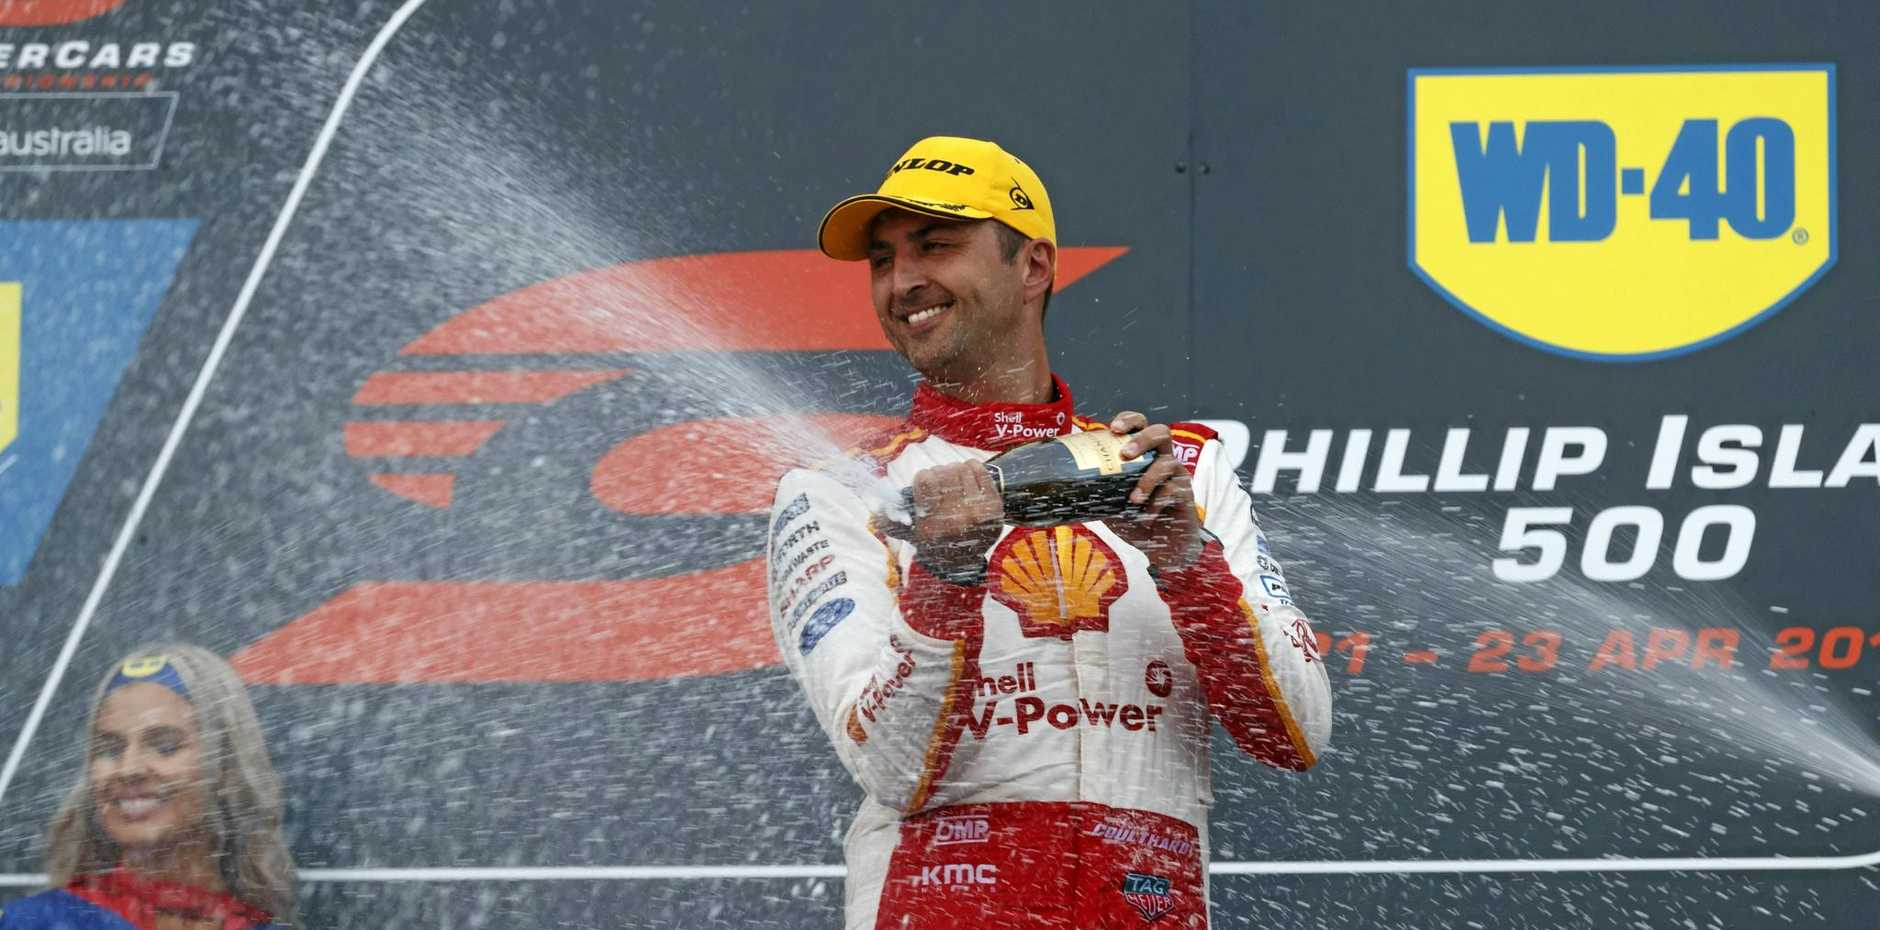 Fabian Coulthard of DJR Team Penske after winning a race at the Phillip Island 500.